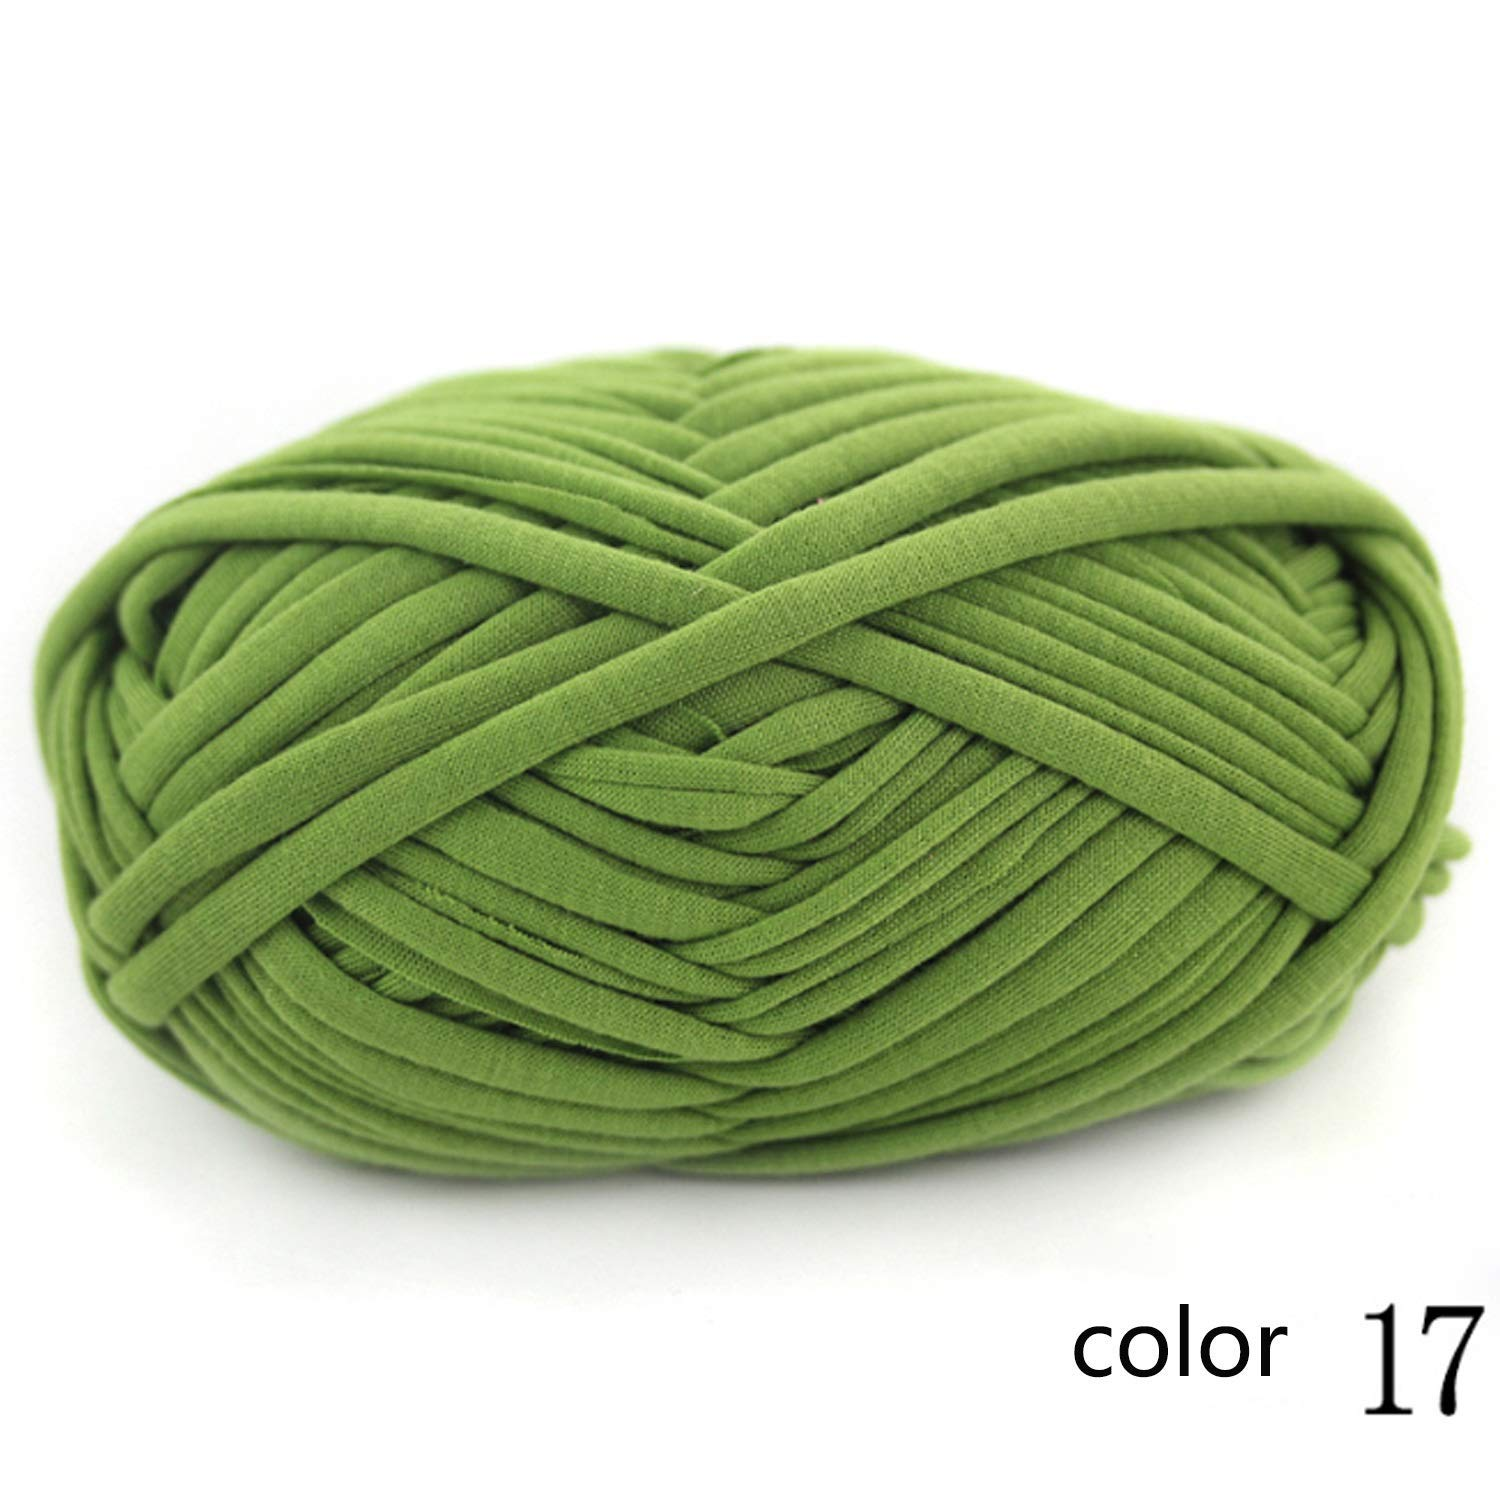 Col 17 1KG JINSH Yarn knitting yarn wiring wire hand woven floor mat DIY cloth Packet line carpet thread 1 0.3 NM 1 ball about 100 g 10 multicolor selection possible (color   Col 20, Size   1KG)